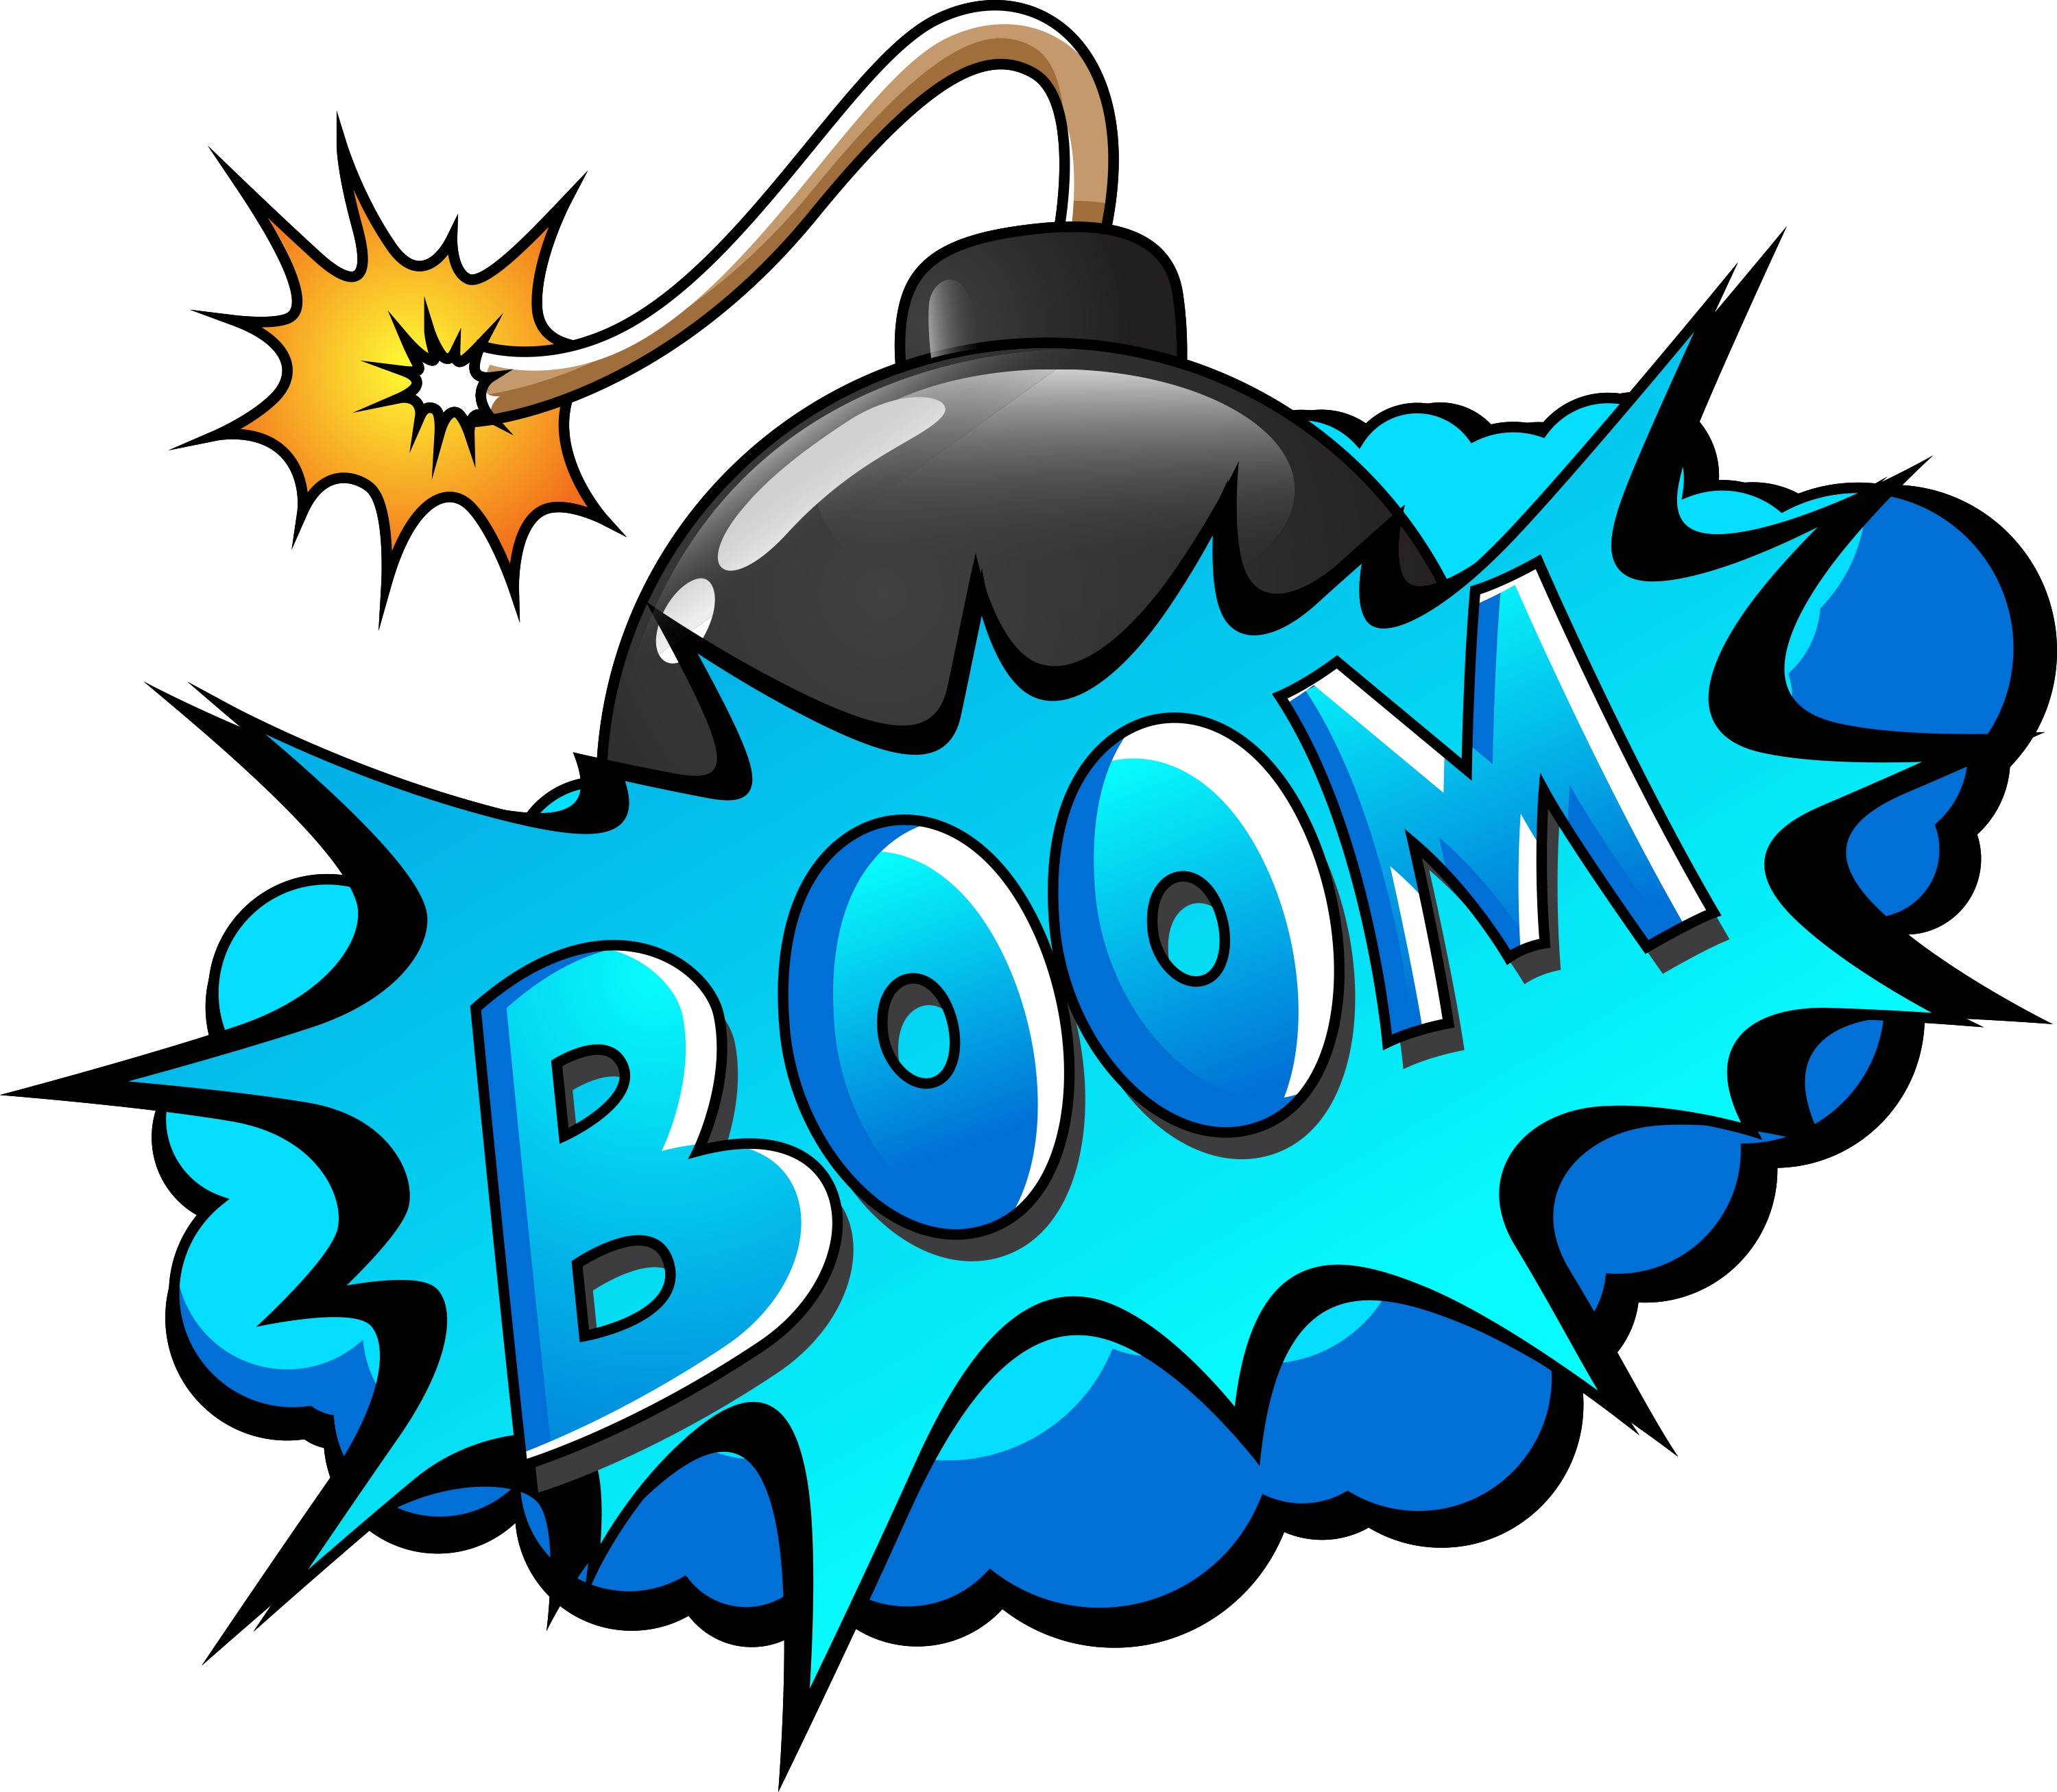 boom-comic-blast-expression-vector-text_myxE6b_L